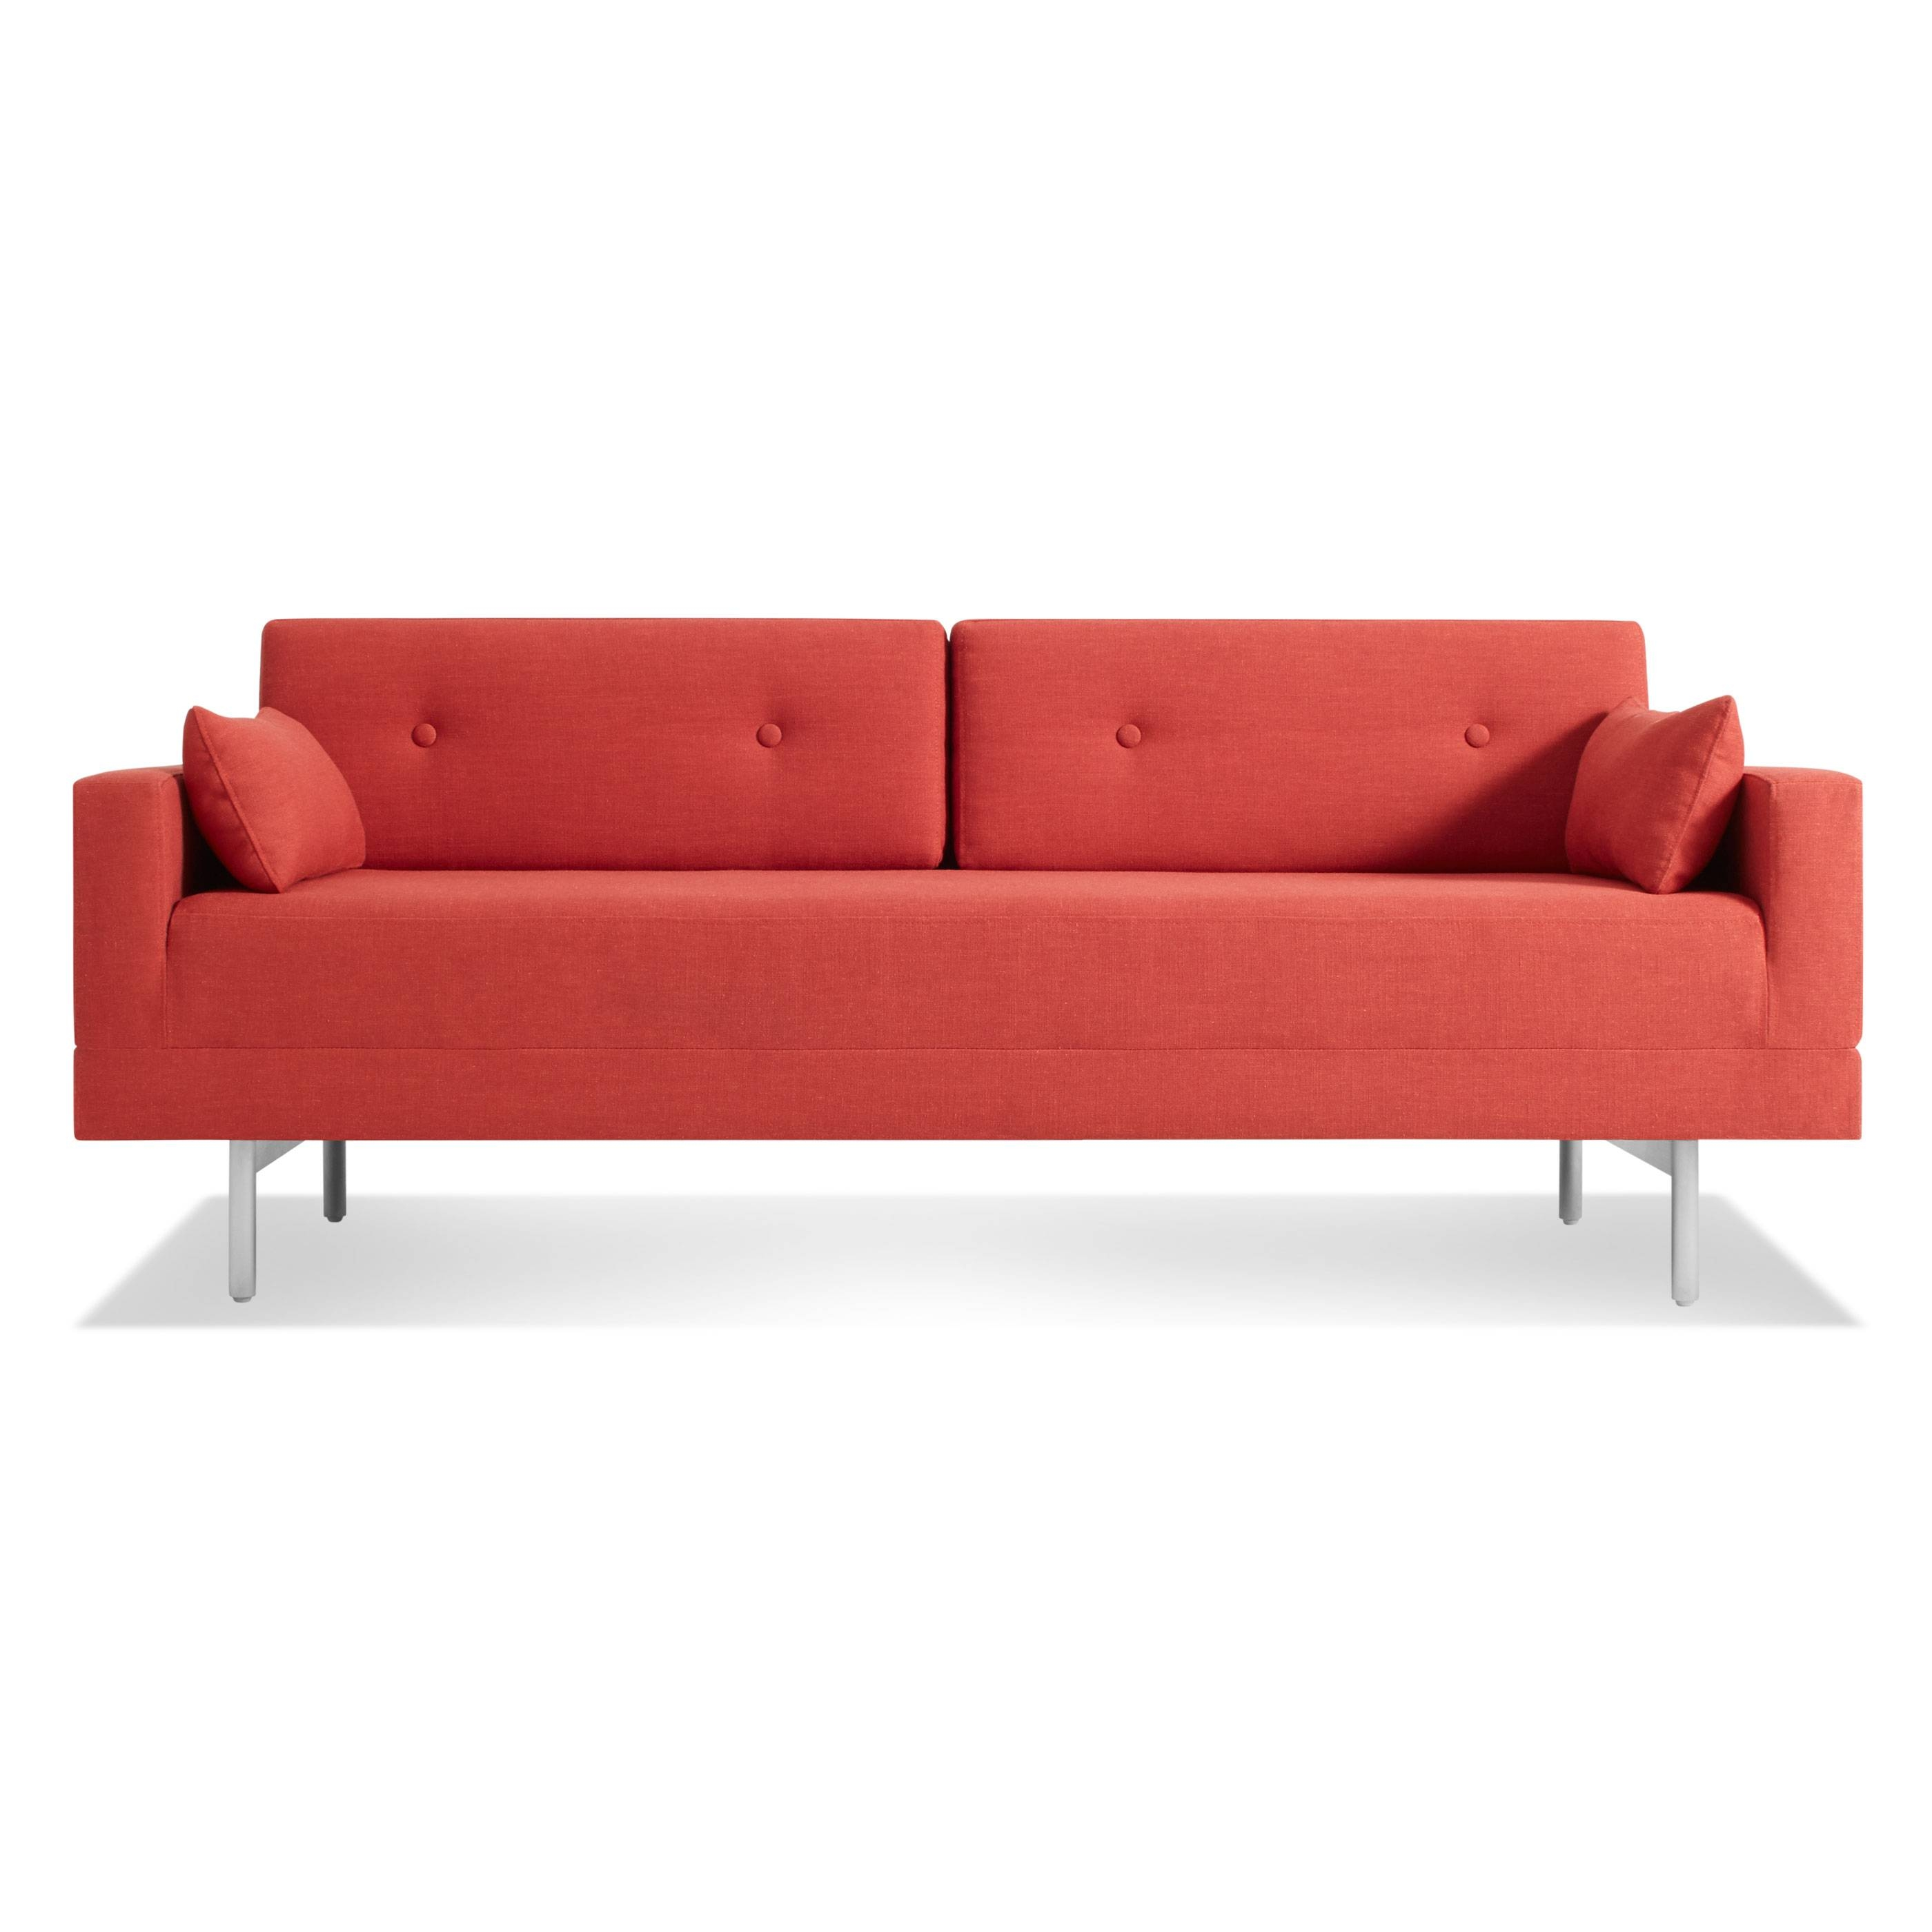 Sofas Center : Sleeper Sofa Sectional Youtube Maxresdefault Red regarding Red Sectional Sleeper Sofas (Image 28 of 30)